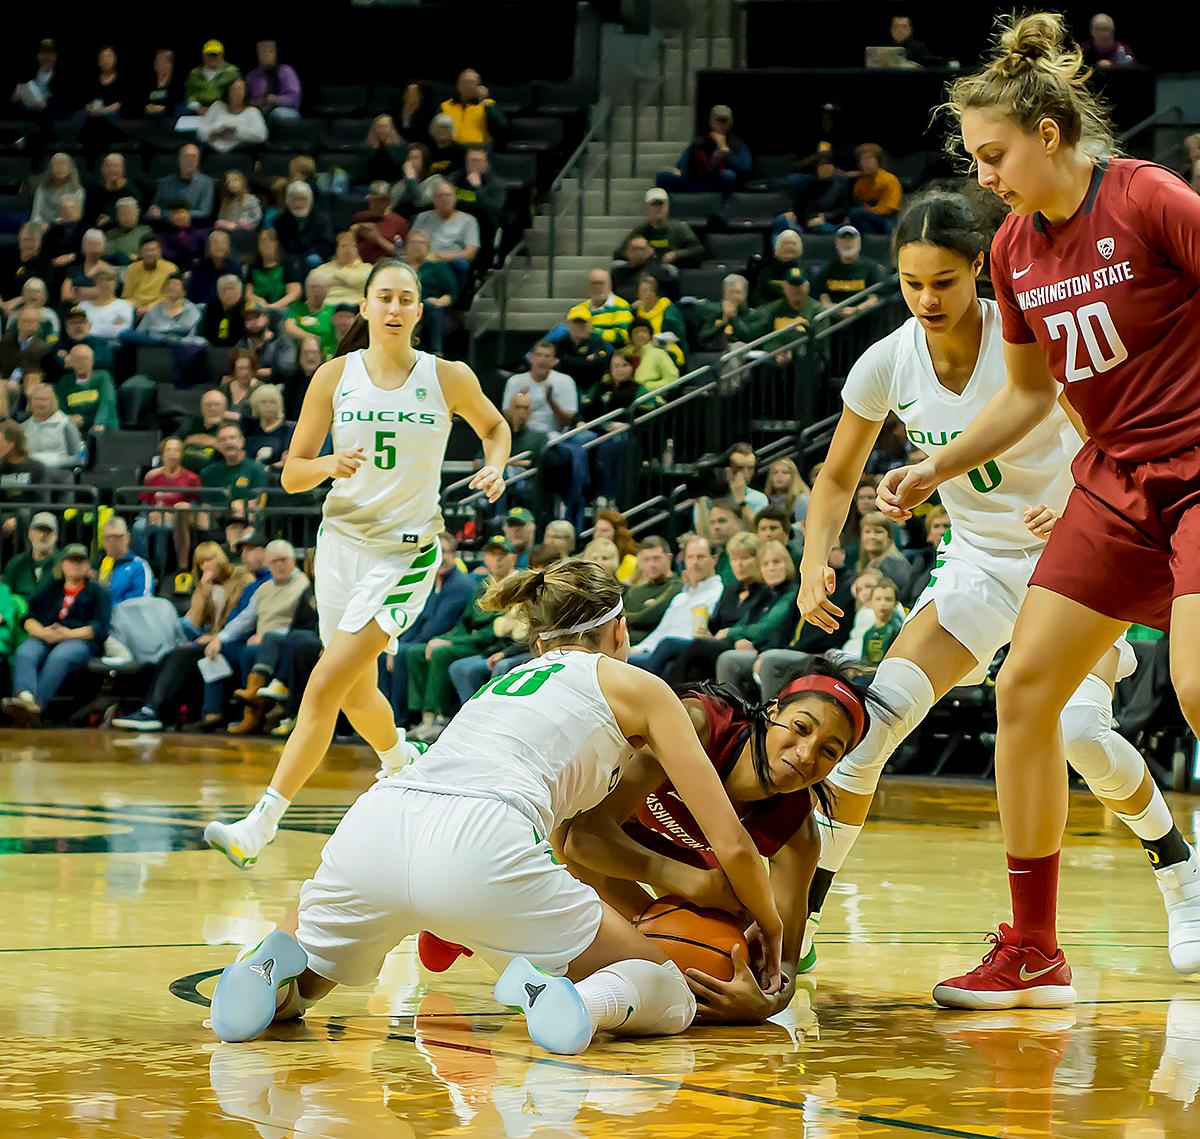 Oregon Ducks Lexi Bando (#10) fights for possession of the ball with Washington State University Cougars Caila Hailey (#1). In their first conference basketball game of the season, the Oregon Women Ducks defeated the Washington State Cougars 89-56 in Matt Knight Arena Saturday afternoon. Oregon's Ruthy Hebard ran up 25 points with 10 rebounds. Sabrina Ionescu shot 25 points with five three-pointers and three rebounds. Lexi Bando added 18 points, with four three-pointers and pulled down three rebounds. Satou Sabally ended the game with 14 points with one three-pointer and two rebounds. The Ducks are now 12-2 overall with 1-0 in conference and the Cougars stand at 7-6 overall and 0-1 in conference play. The Oregon Women Ducks next play the University of Washington Huskies at 1:00 pm on Sunday. Photo by Karly DeWees, Oregon News Lab